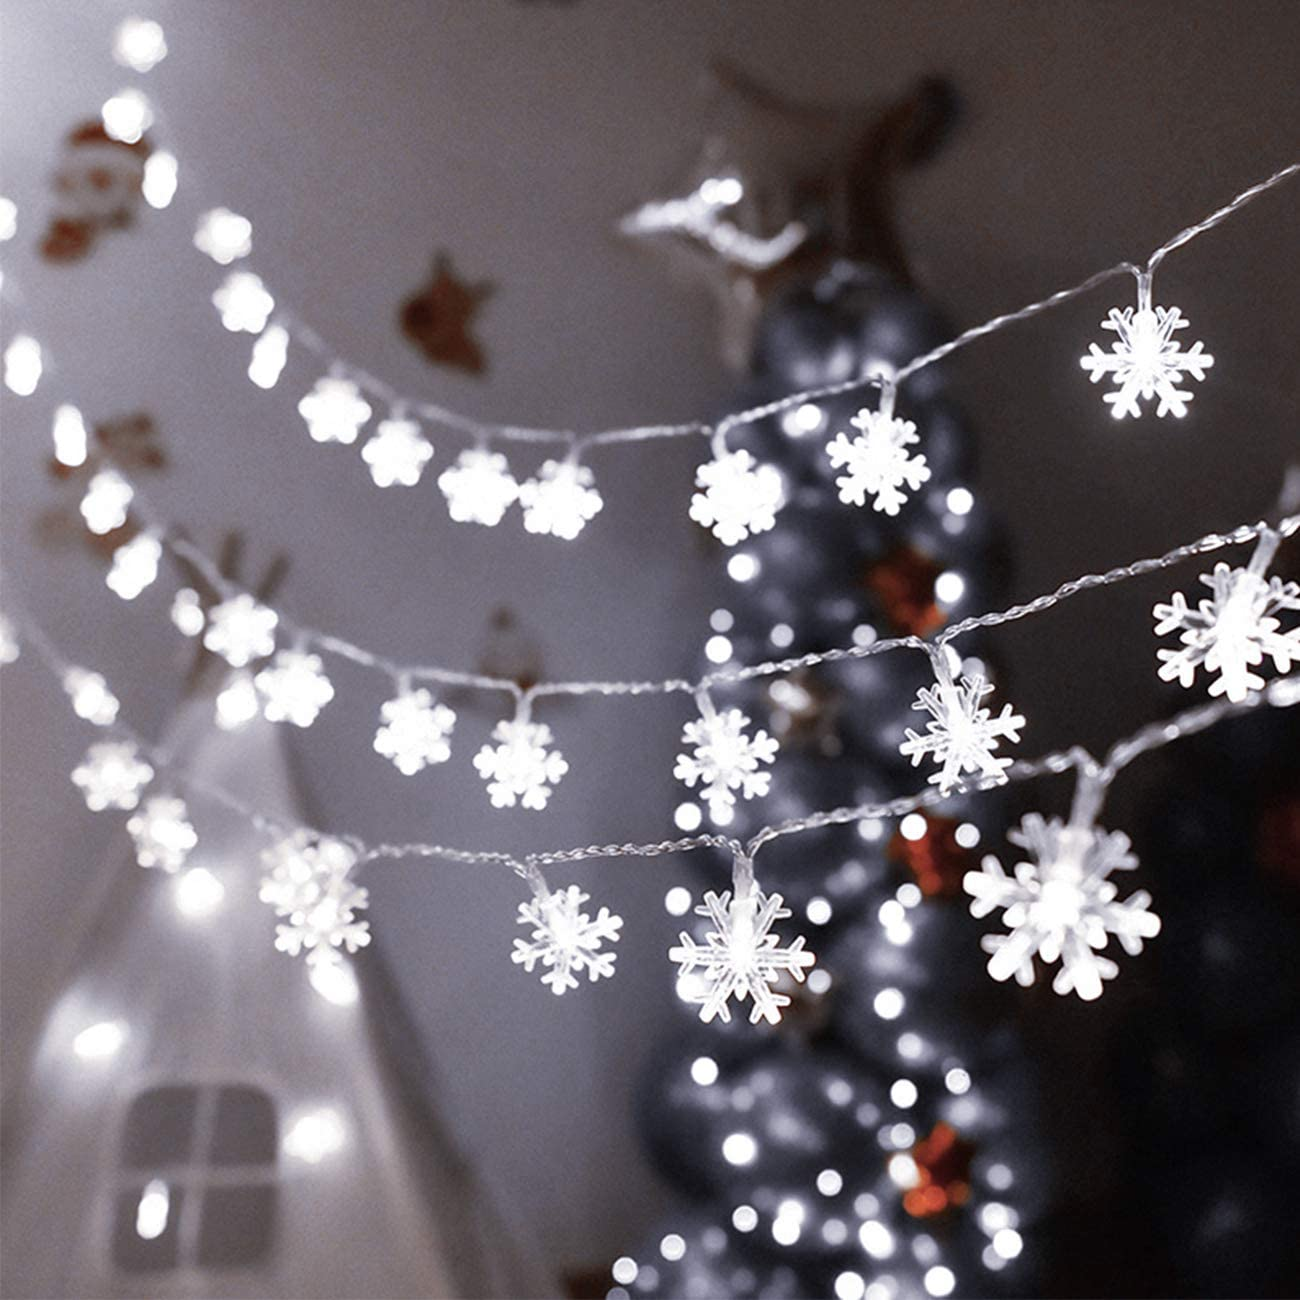 KNONEW Christmas Lights 100 LED 33ft Snowflake String Lights with 8 Lighting Modes, Fairy Lights for Xmas Garden Patio Bedroom Party Decor Indoor Outdoor Celebration Lighting Decorations (Cool White)